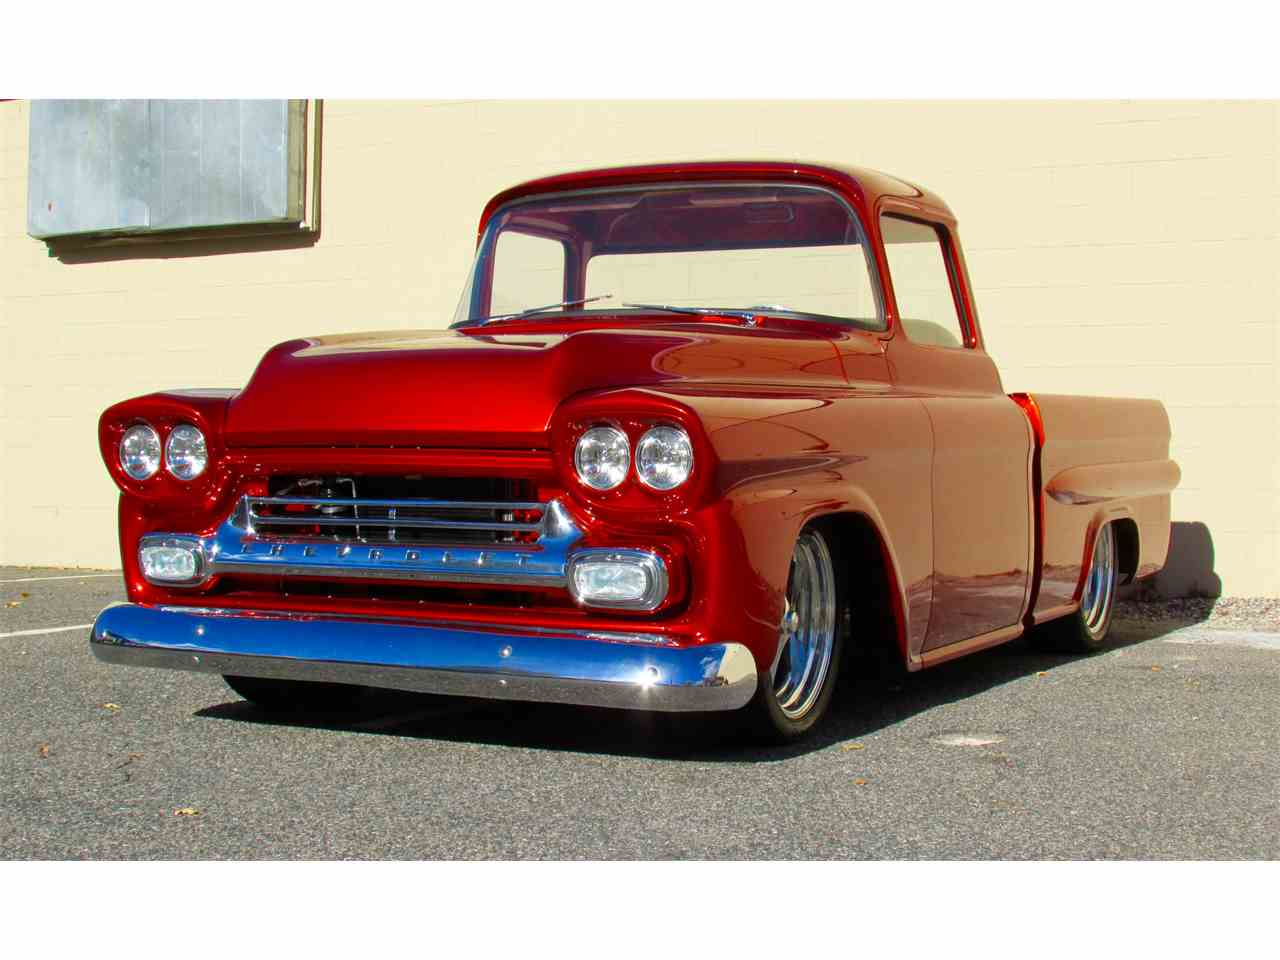 Large Picture of 1959 Chevrolet Fleetside Custom Pickup Truck  - $169,000.00 Offered by a Private Seller - JPTV